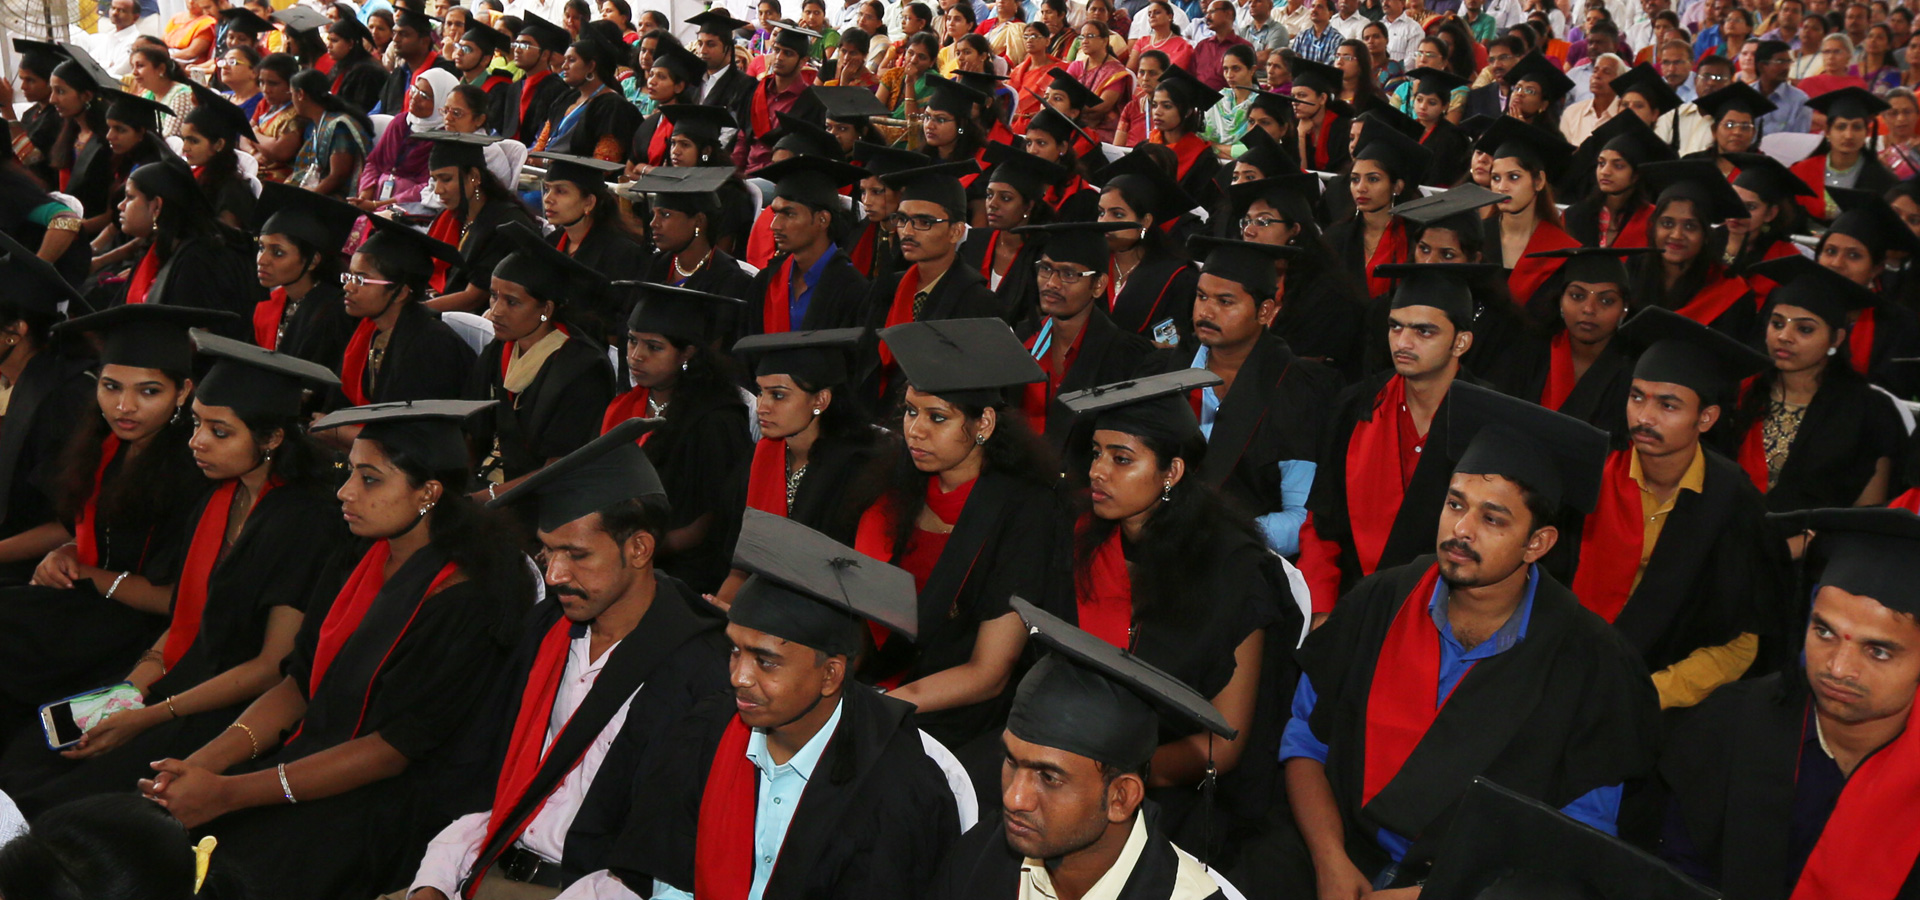 Student convocation ceremony